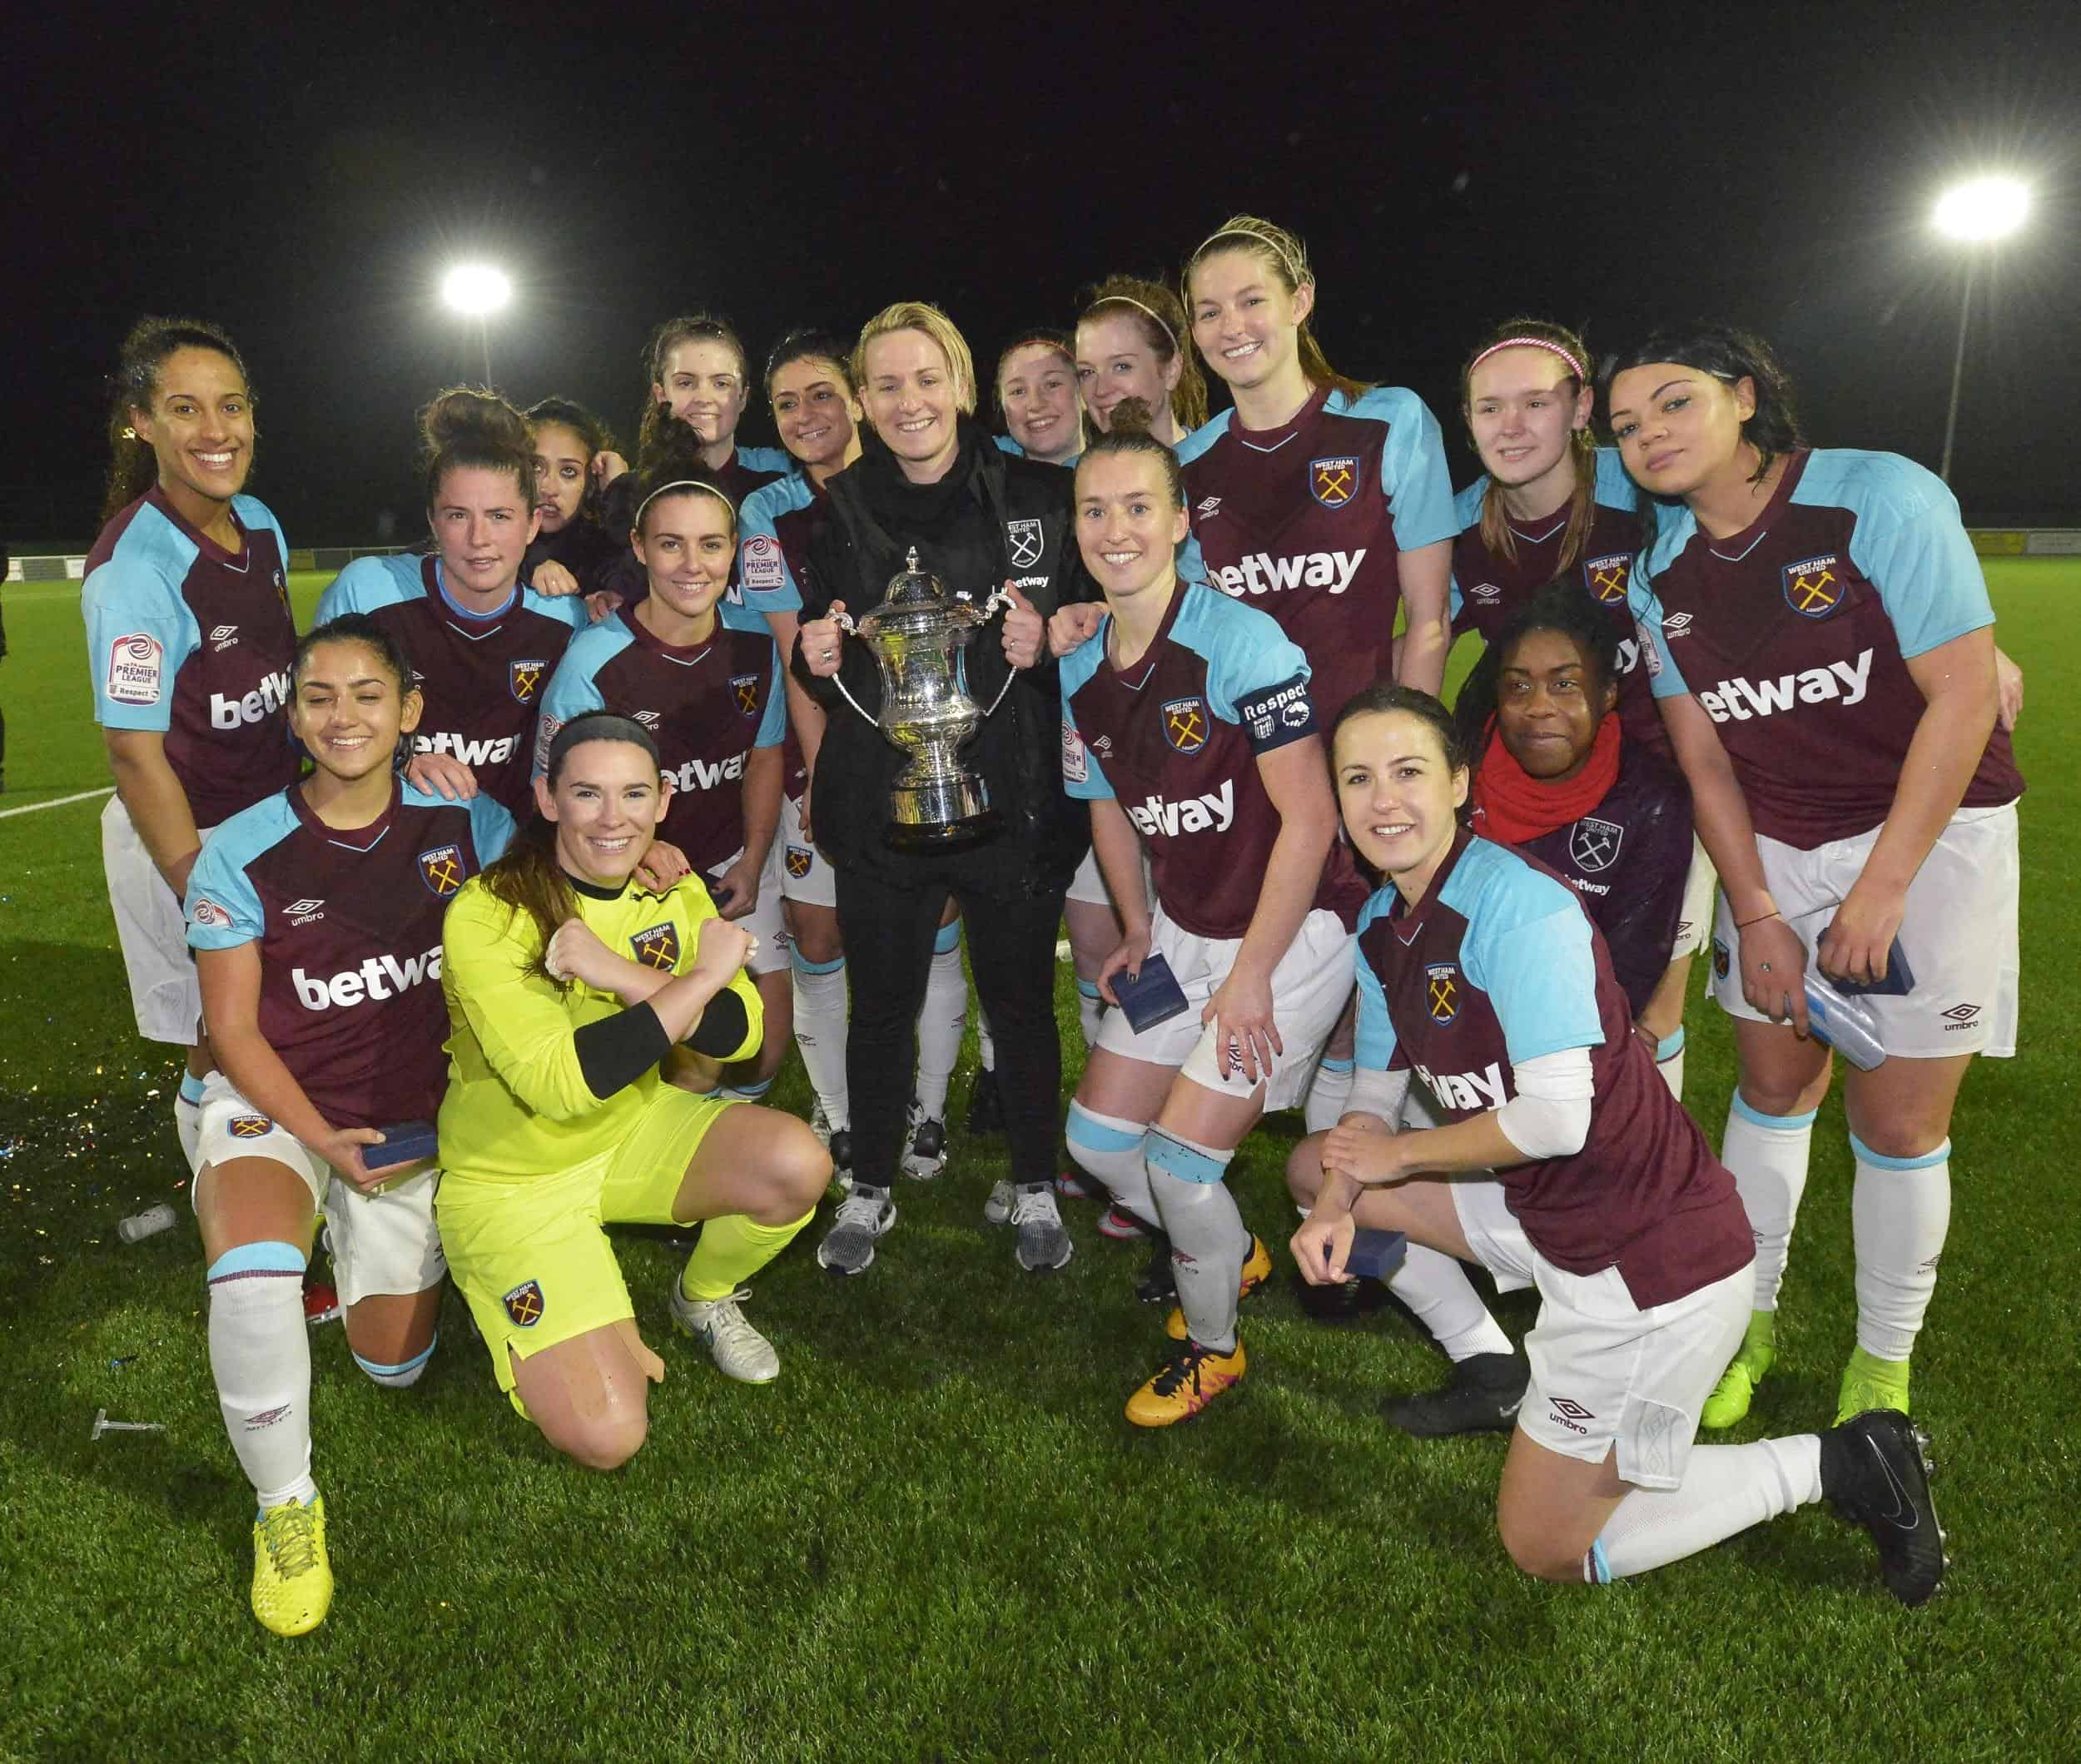 West Ham Win The Goodmove.co.uk Women's Cup